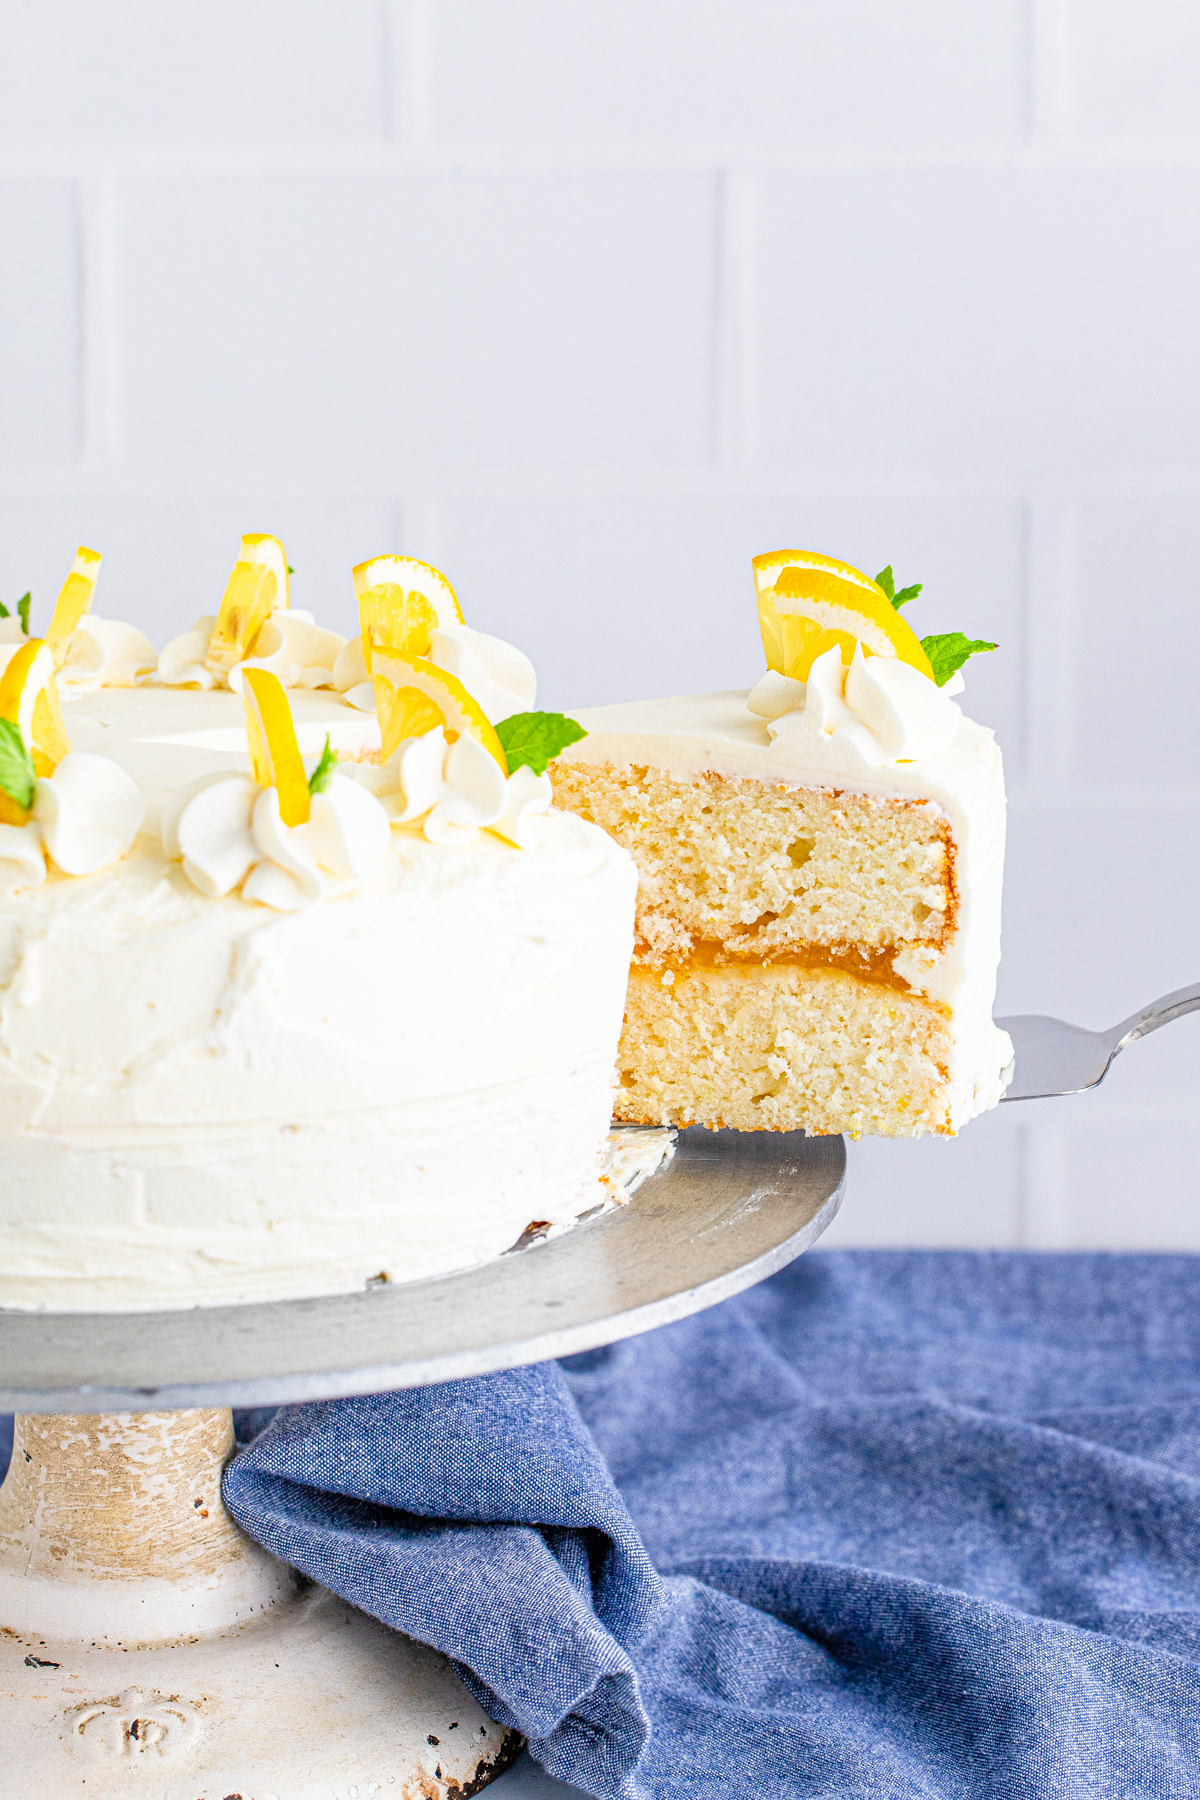 Cake server pulling out a slice of cake